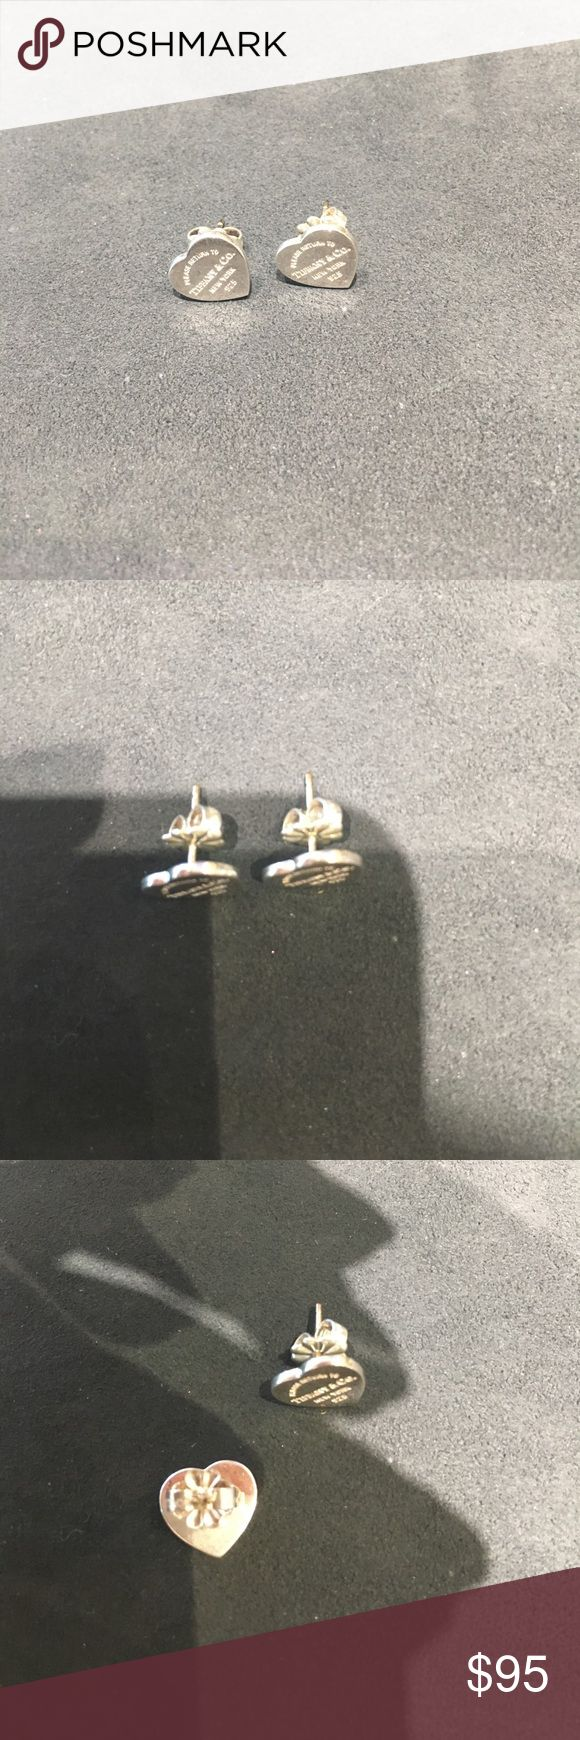 """Tiffany and Co. Return to Tiffany & Co Earrings Sterling silver Authentic Tiffany and Co. """"Please return to Tiffany and Co"""" heart earrings. Worn, very light scratches on front just from normal wear. Not interested in trades. Tiffany & Co. Jewelry Earrings"""